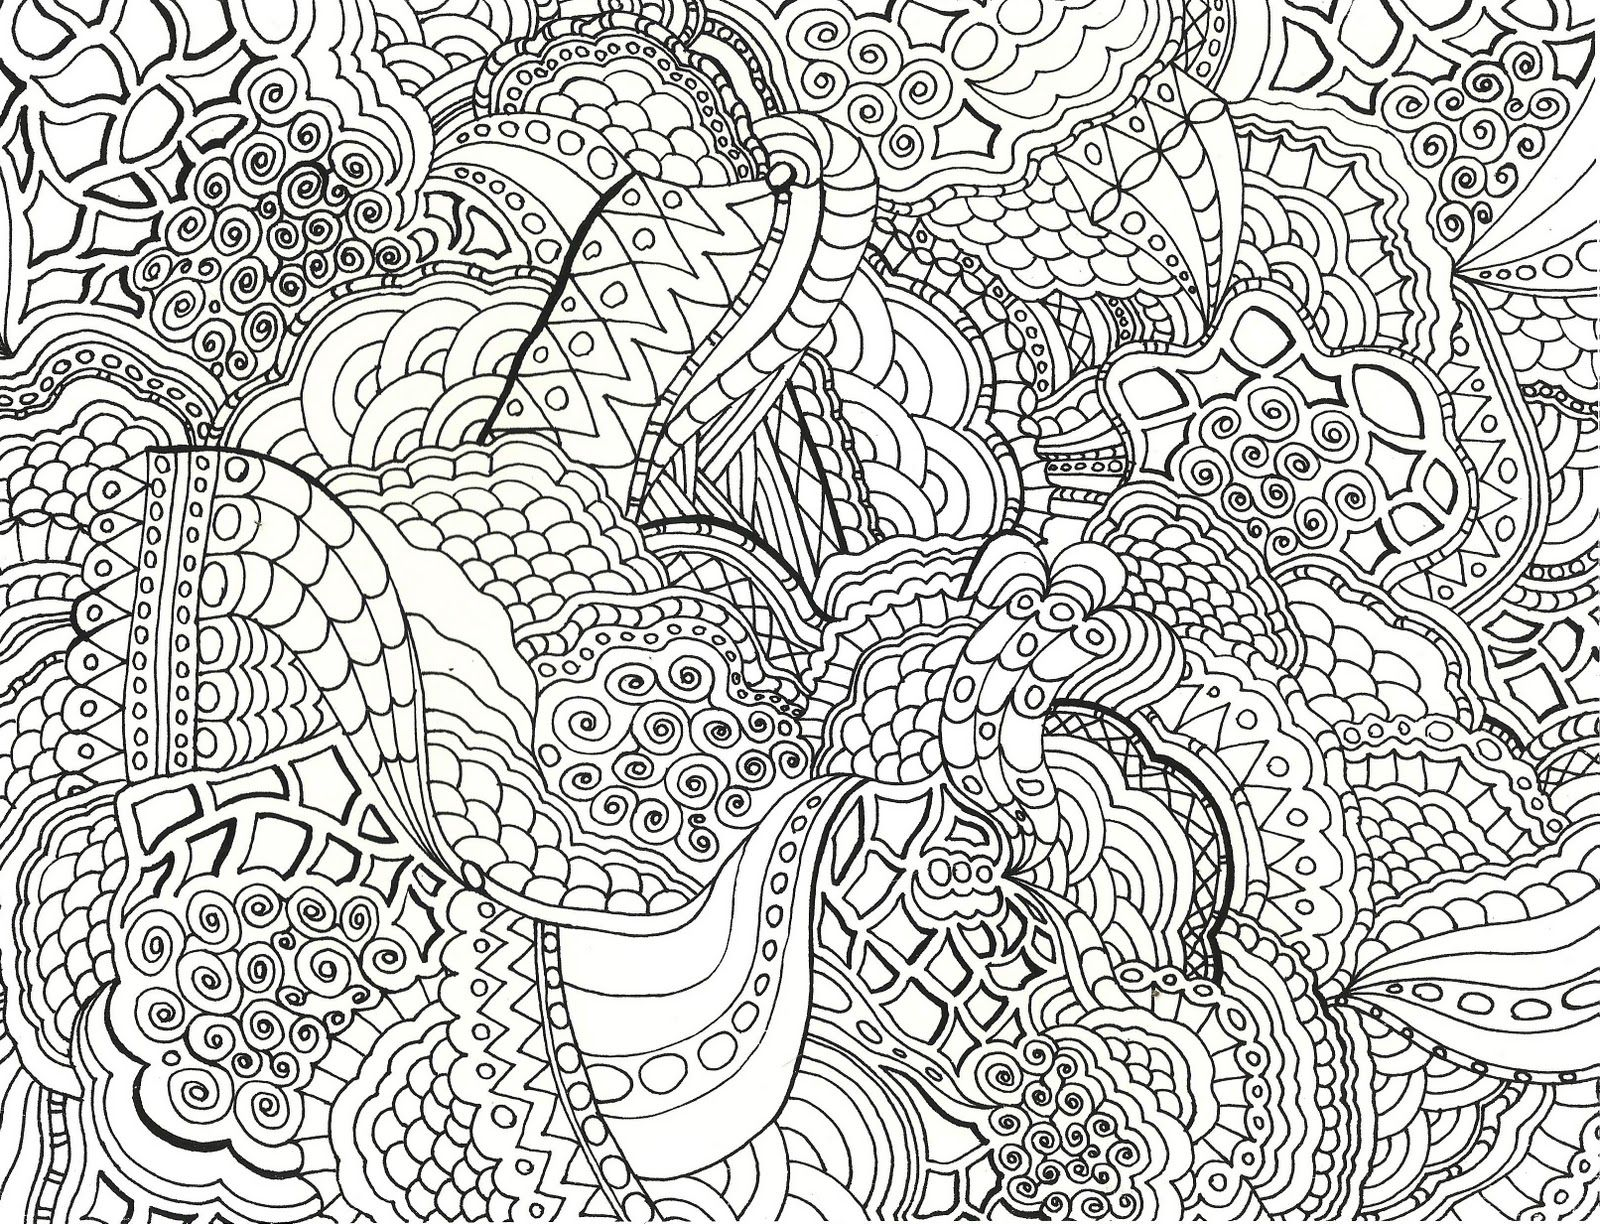 coloring design pages - photo#11